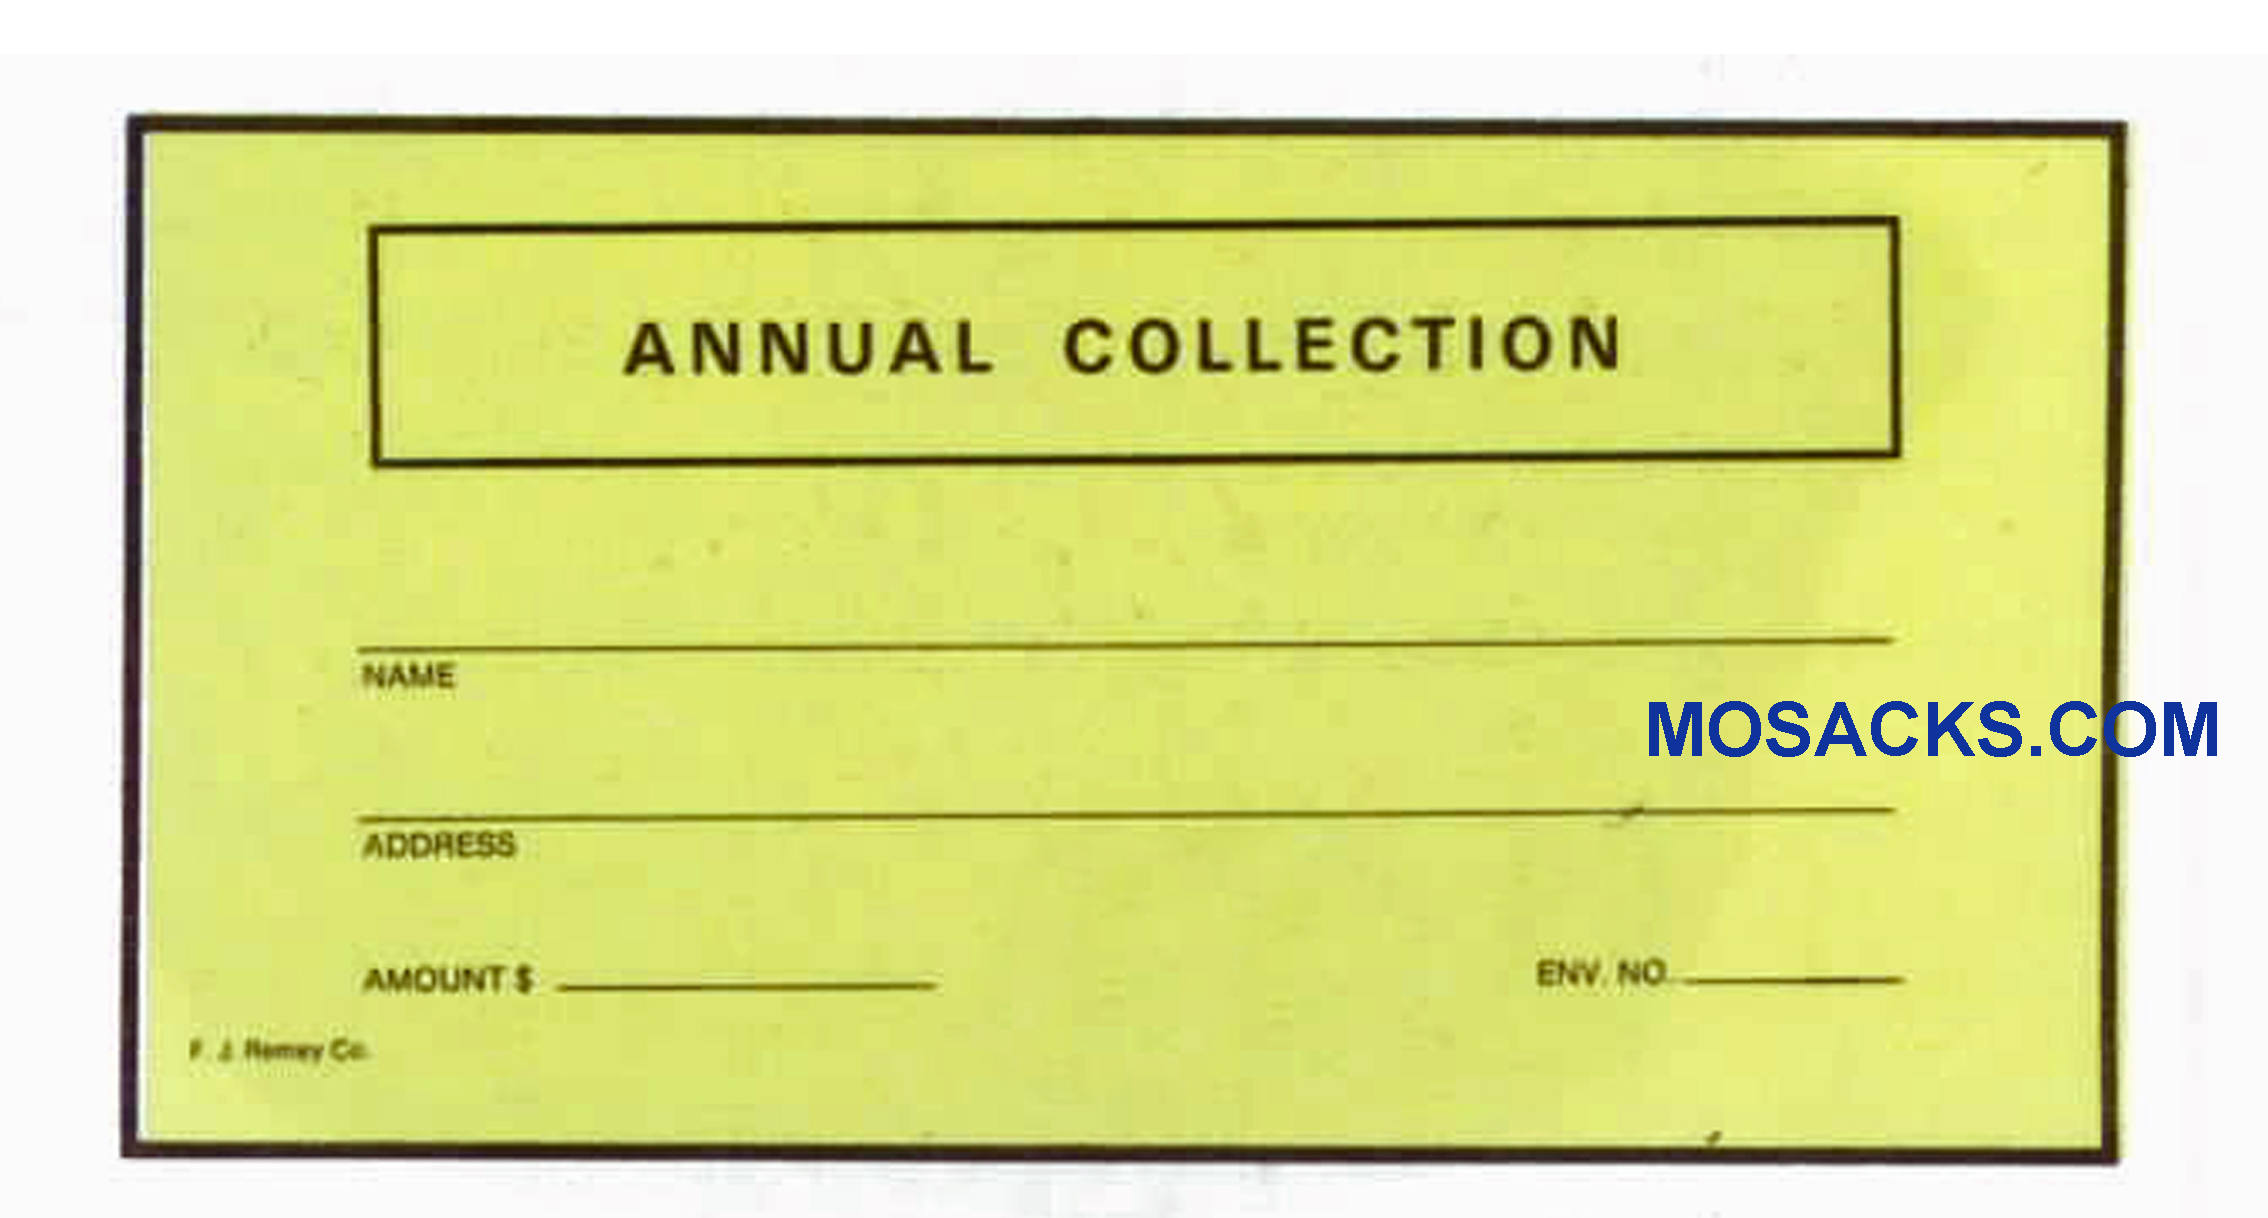 Annual Collection Offering Envelope 6-1/4 x 3-1/8 #304-334